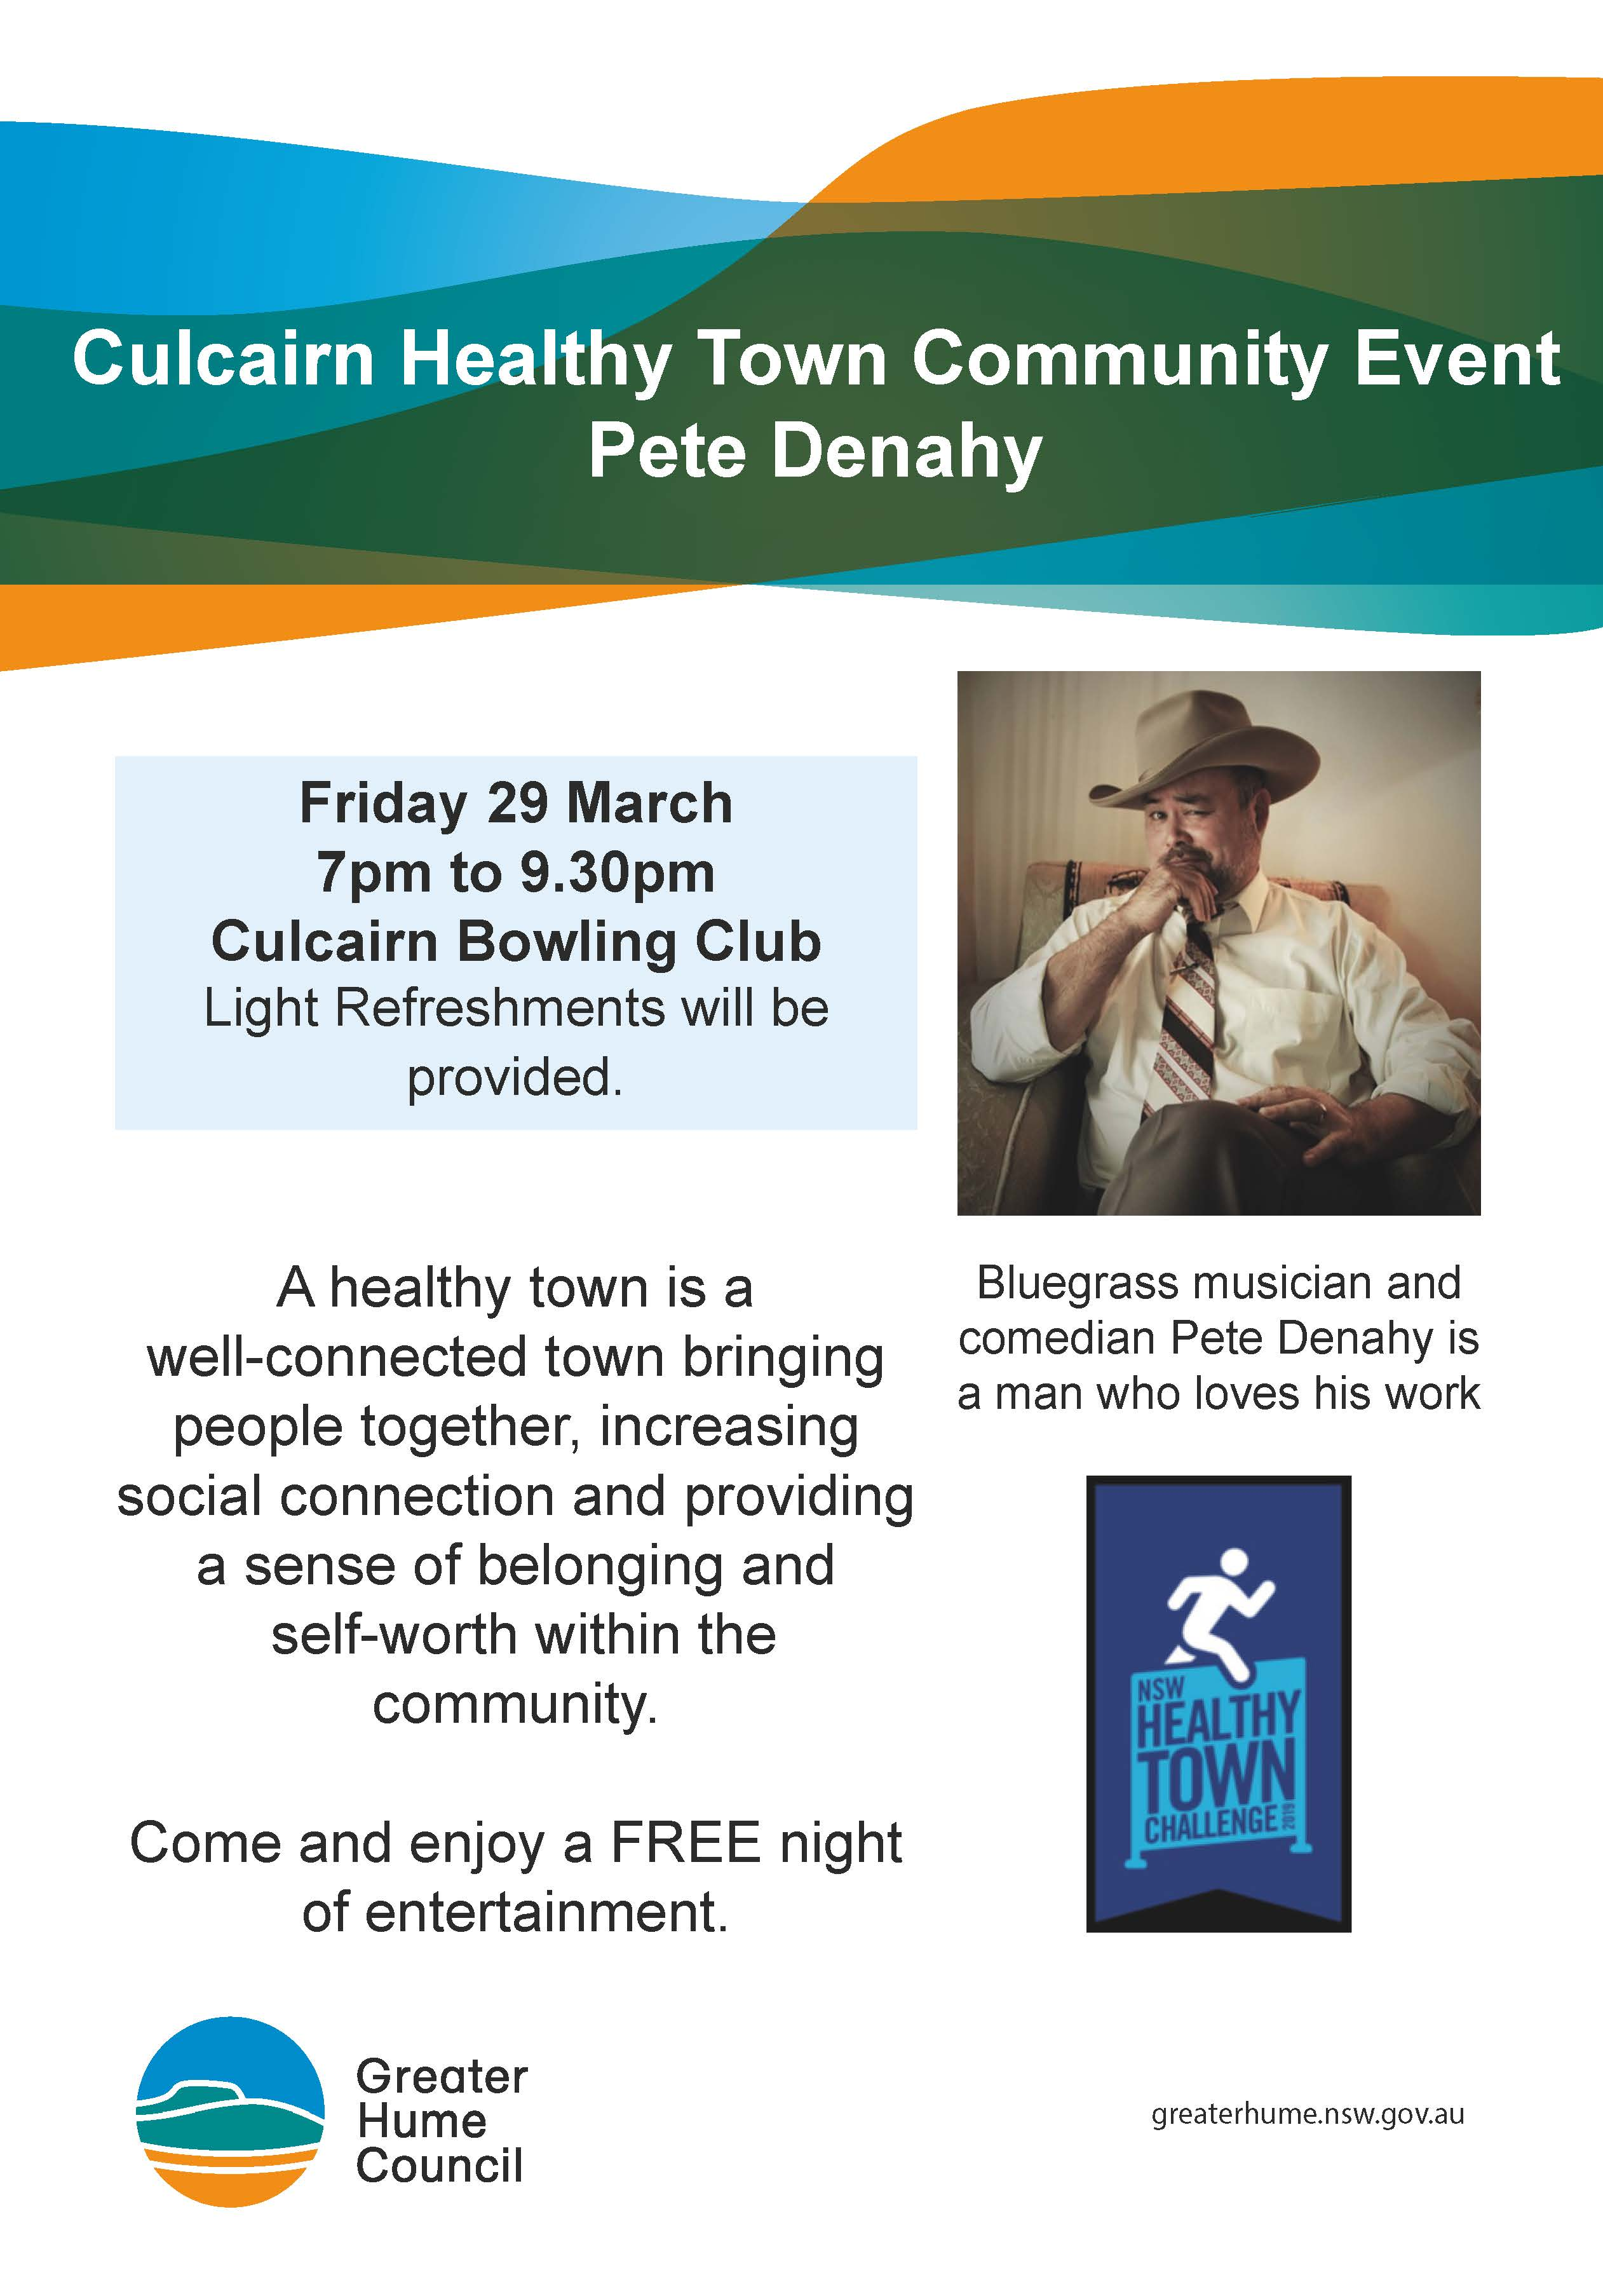 Culcairn Healthy Towns Community Event. Pete Denahy.jpg